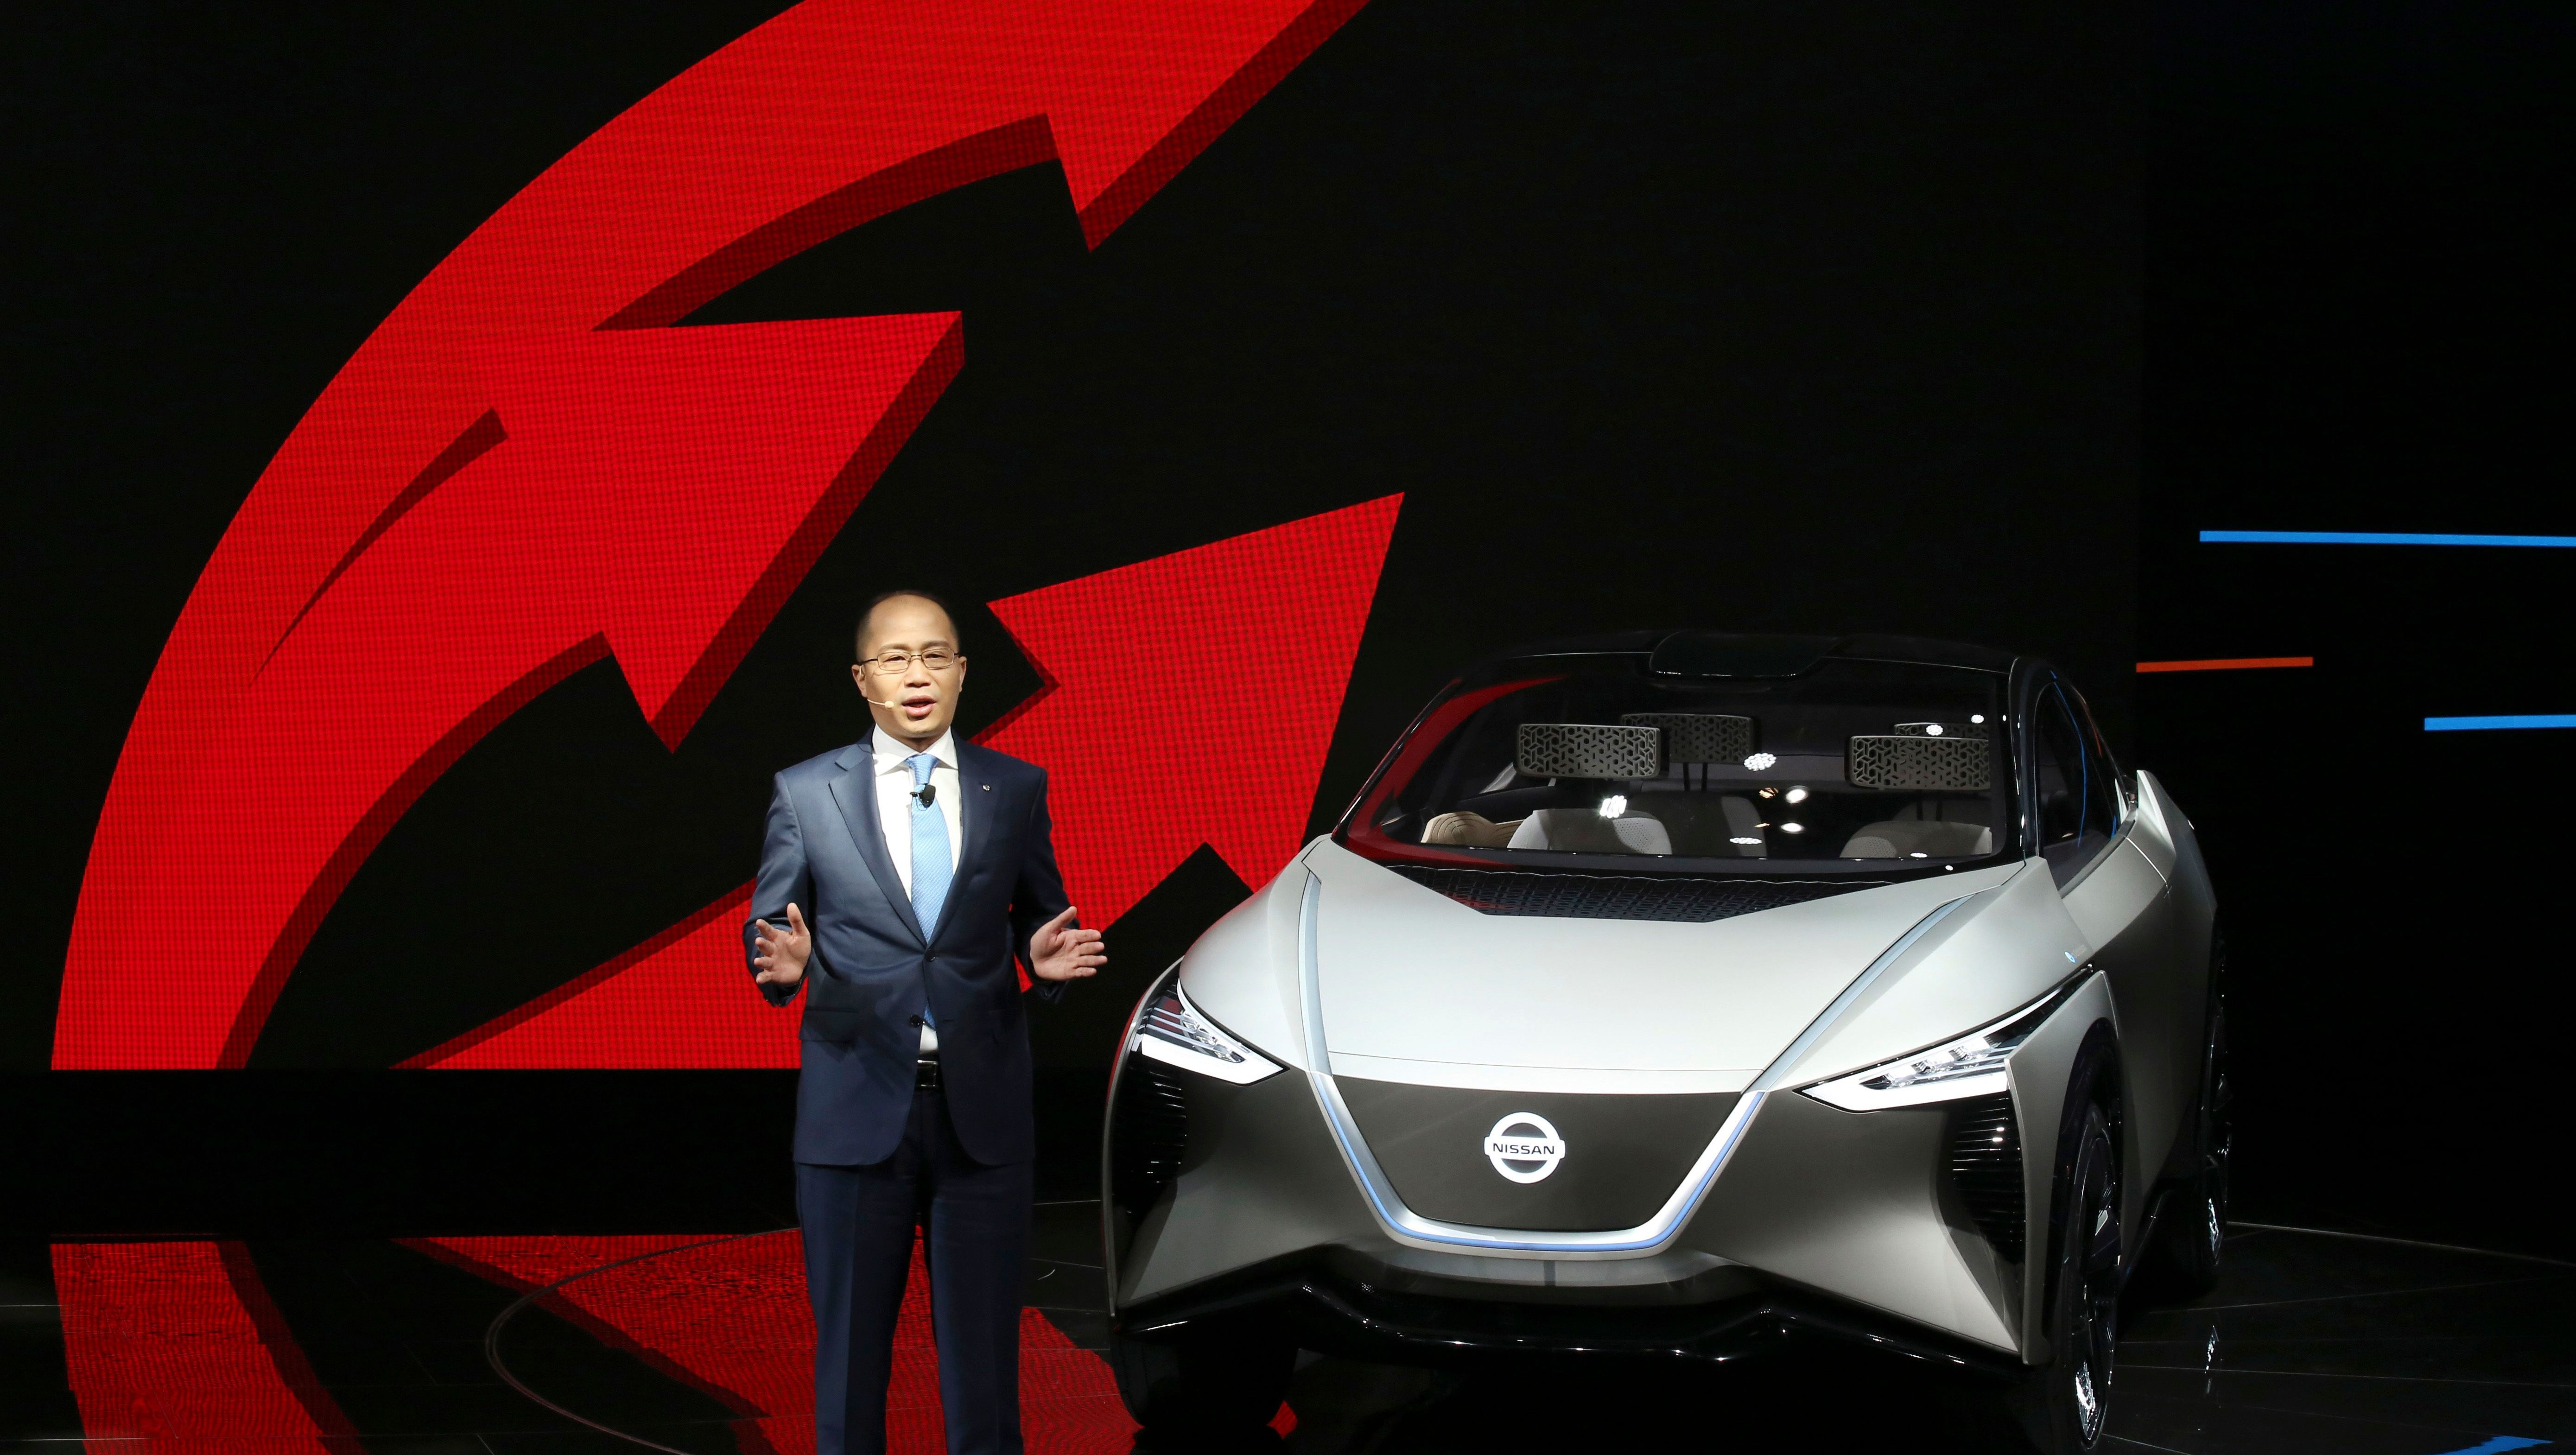 Chen Hao, Dongfeng Nissan Passenger Vehicle company's deputy managing director speaks near the Nissan IMX concept car during the start of the Auto China 2018 in Beijing, China, Wednesday, April 25, 2018. Volkswagen and Nissan have unveiled electric cars designed for China at the Beijing auto show that highlights the growing importance of Chinese buyers for a technology seen as a key part of the global industry's future. (AP Photo/Ng Han Guan)